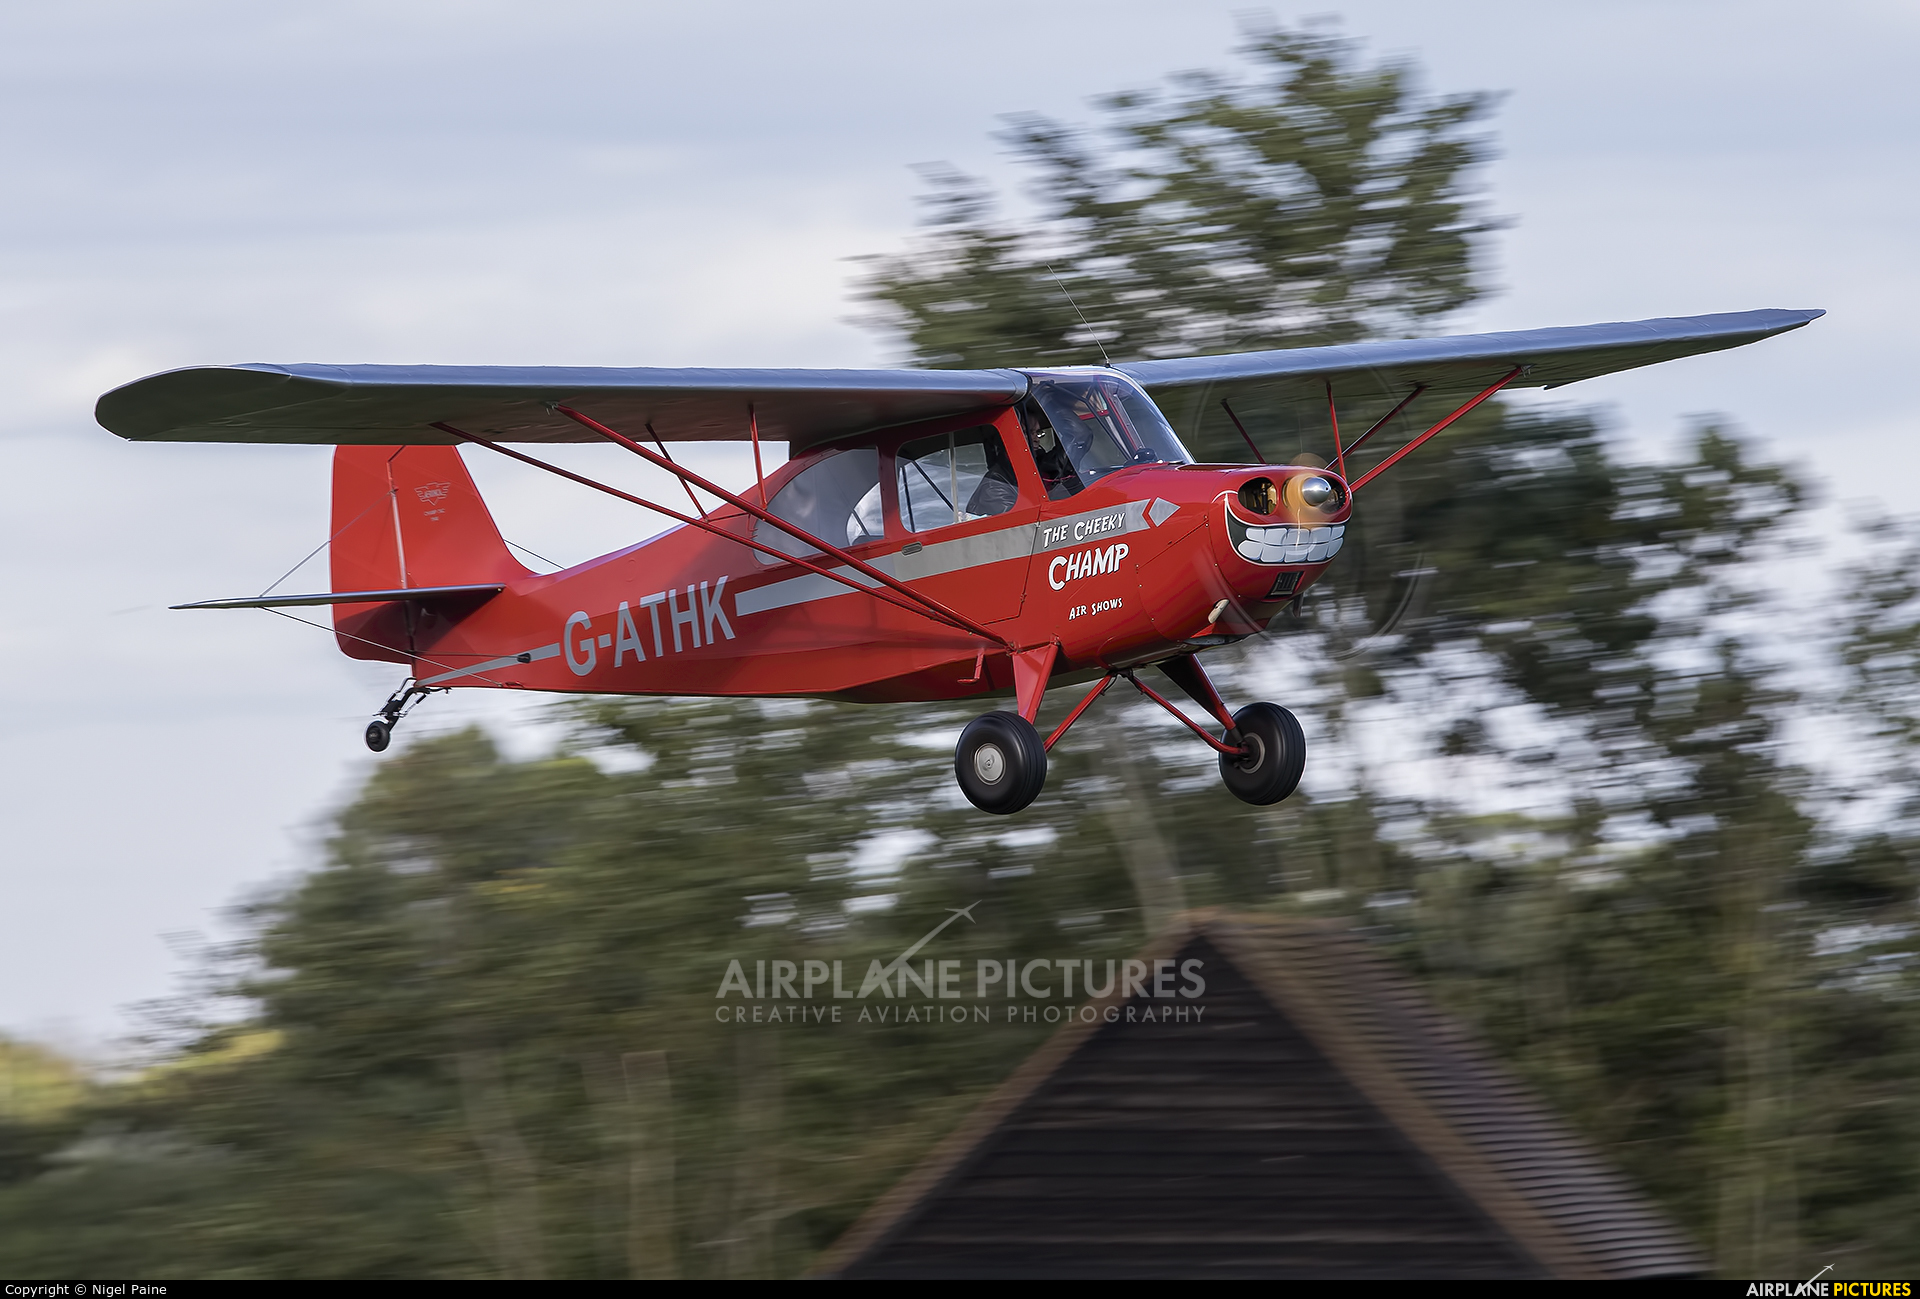 Private G-ATHK aircraft at Old Warden